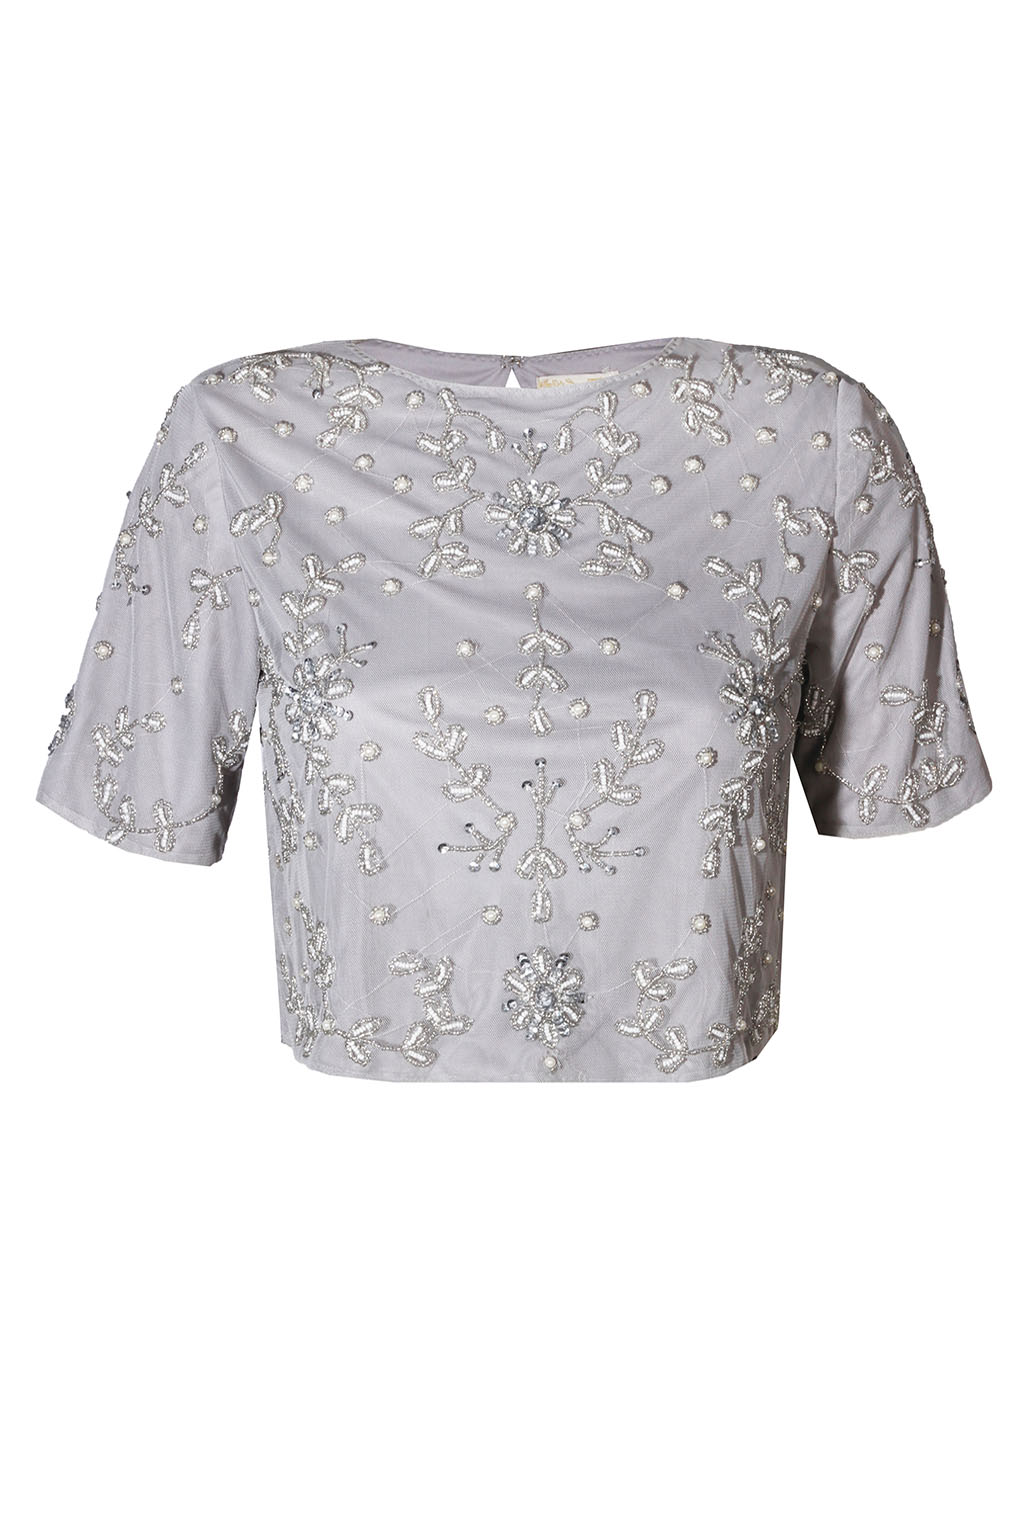 Image of Lace & Beads Anna Grey Top